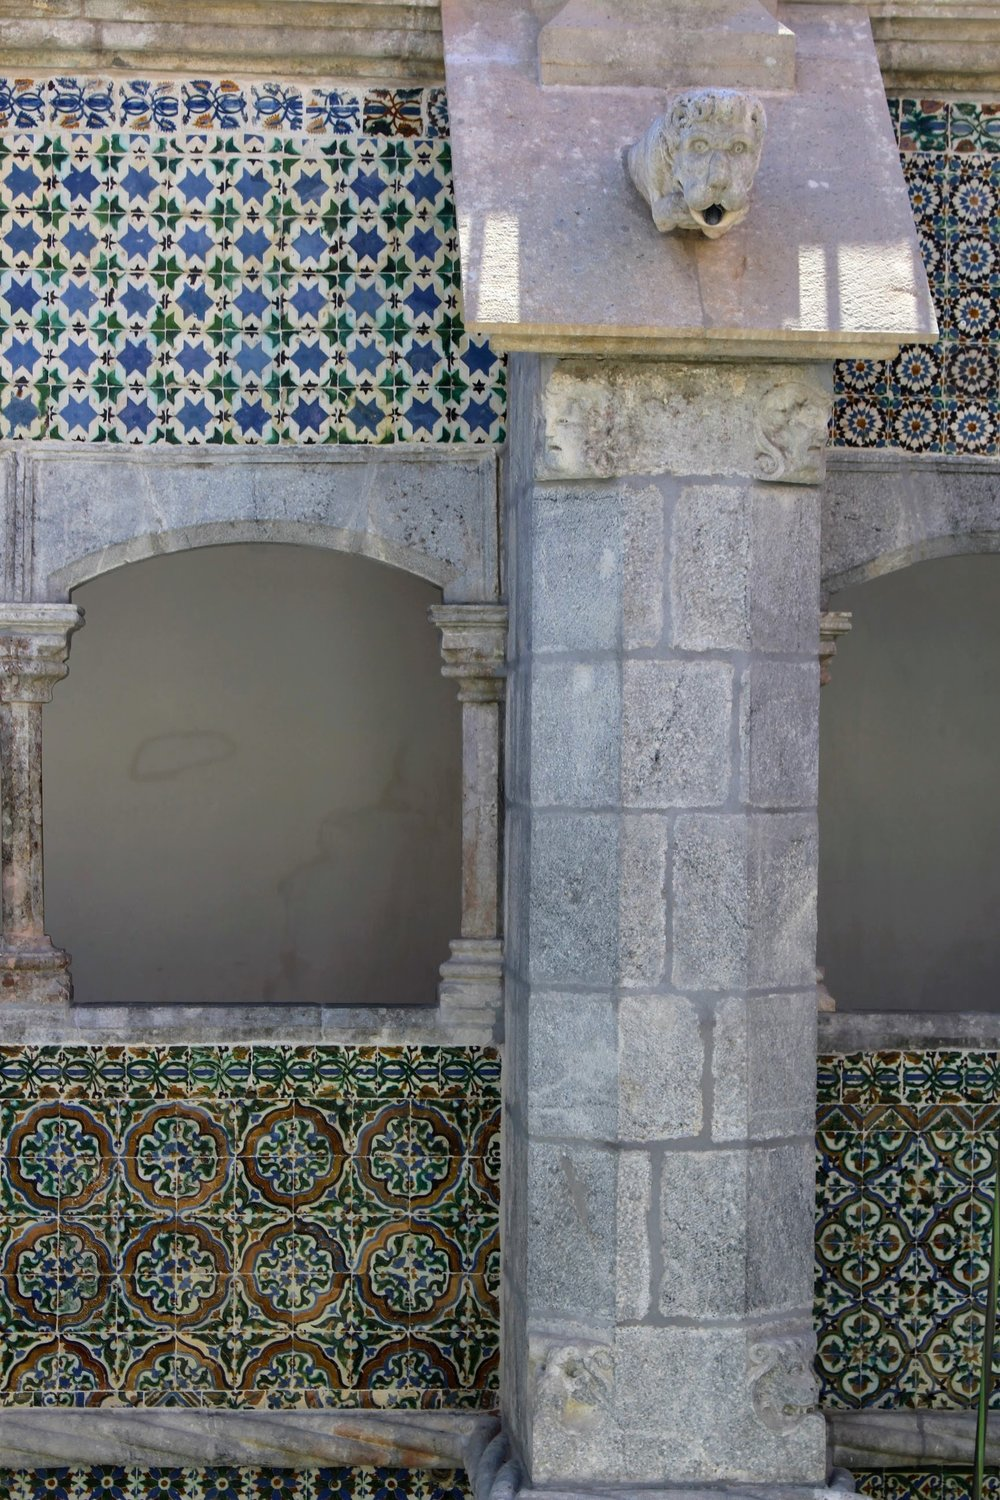 Tiles in the courtyard.